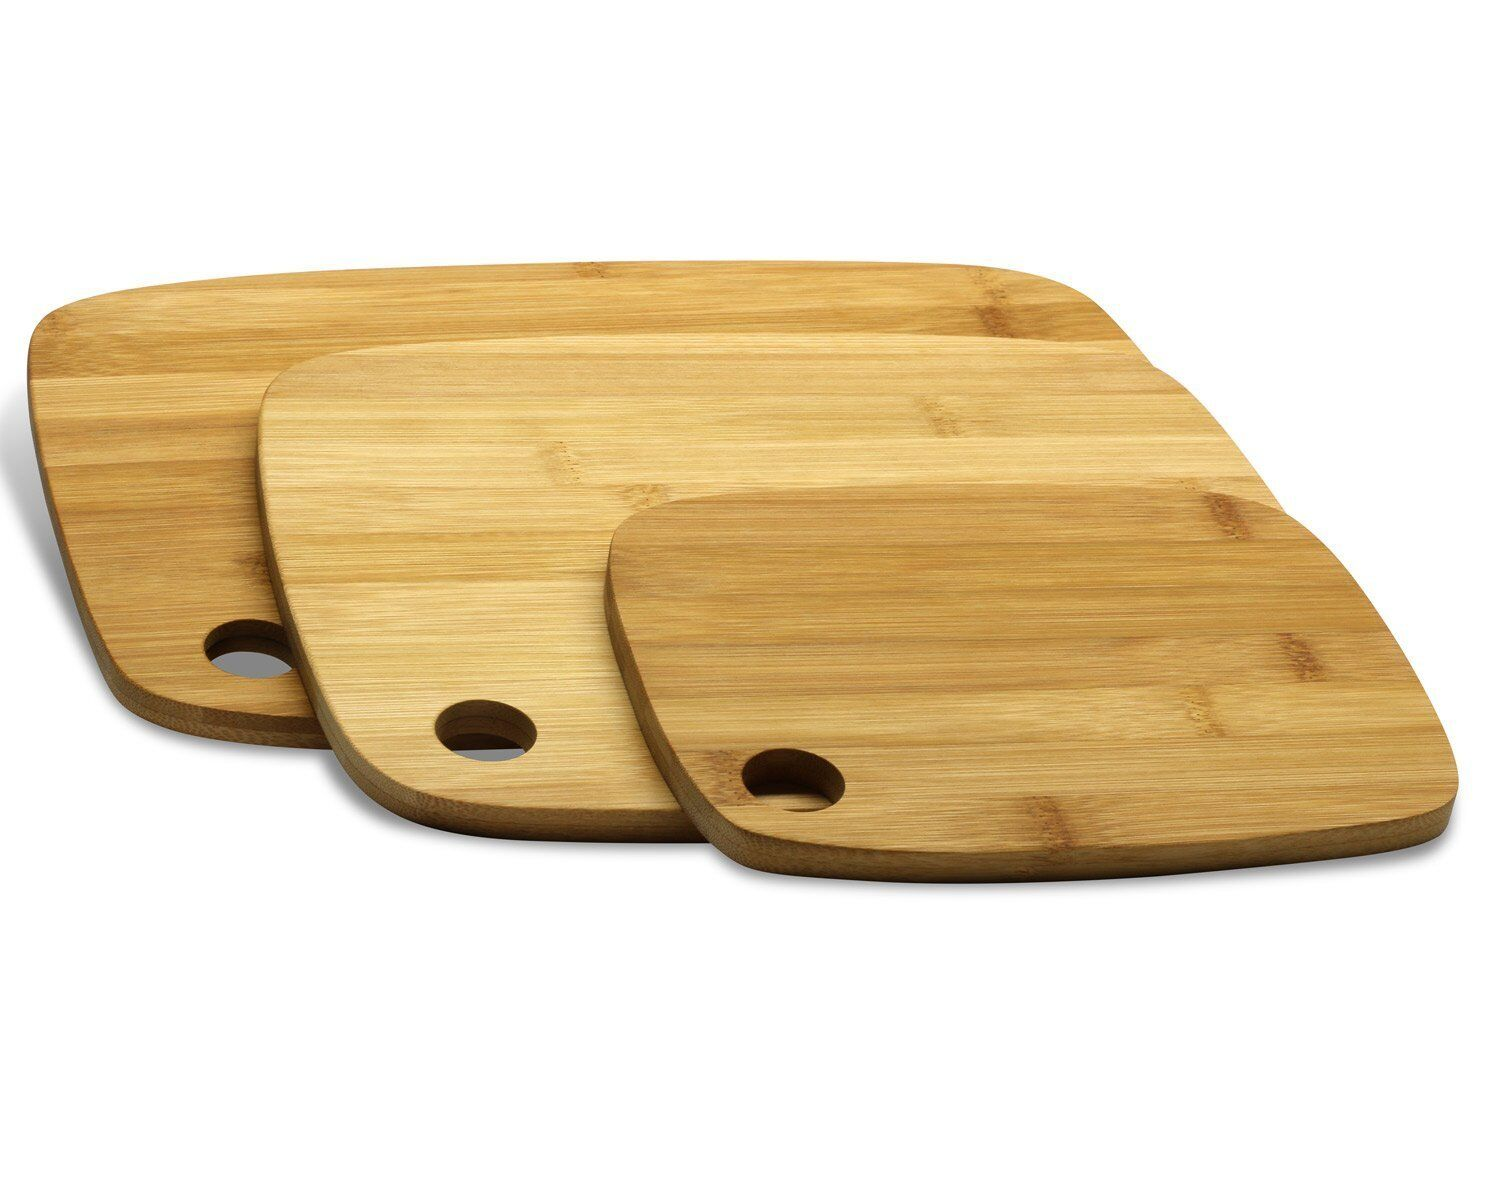 Bamboo Cutting Board Set 3 Piece Kitchen Choping Accessory Boards Dpldc Ebay